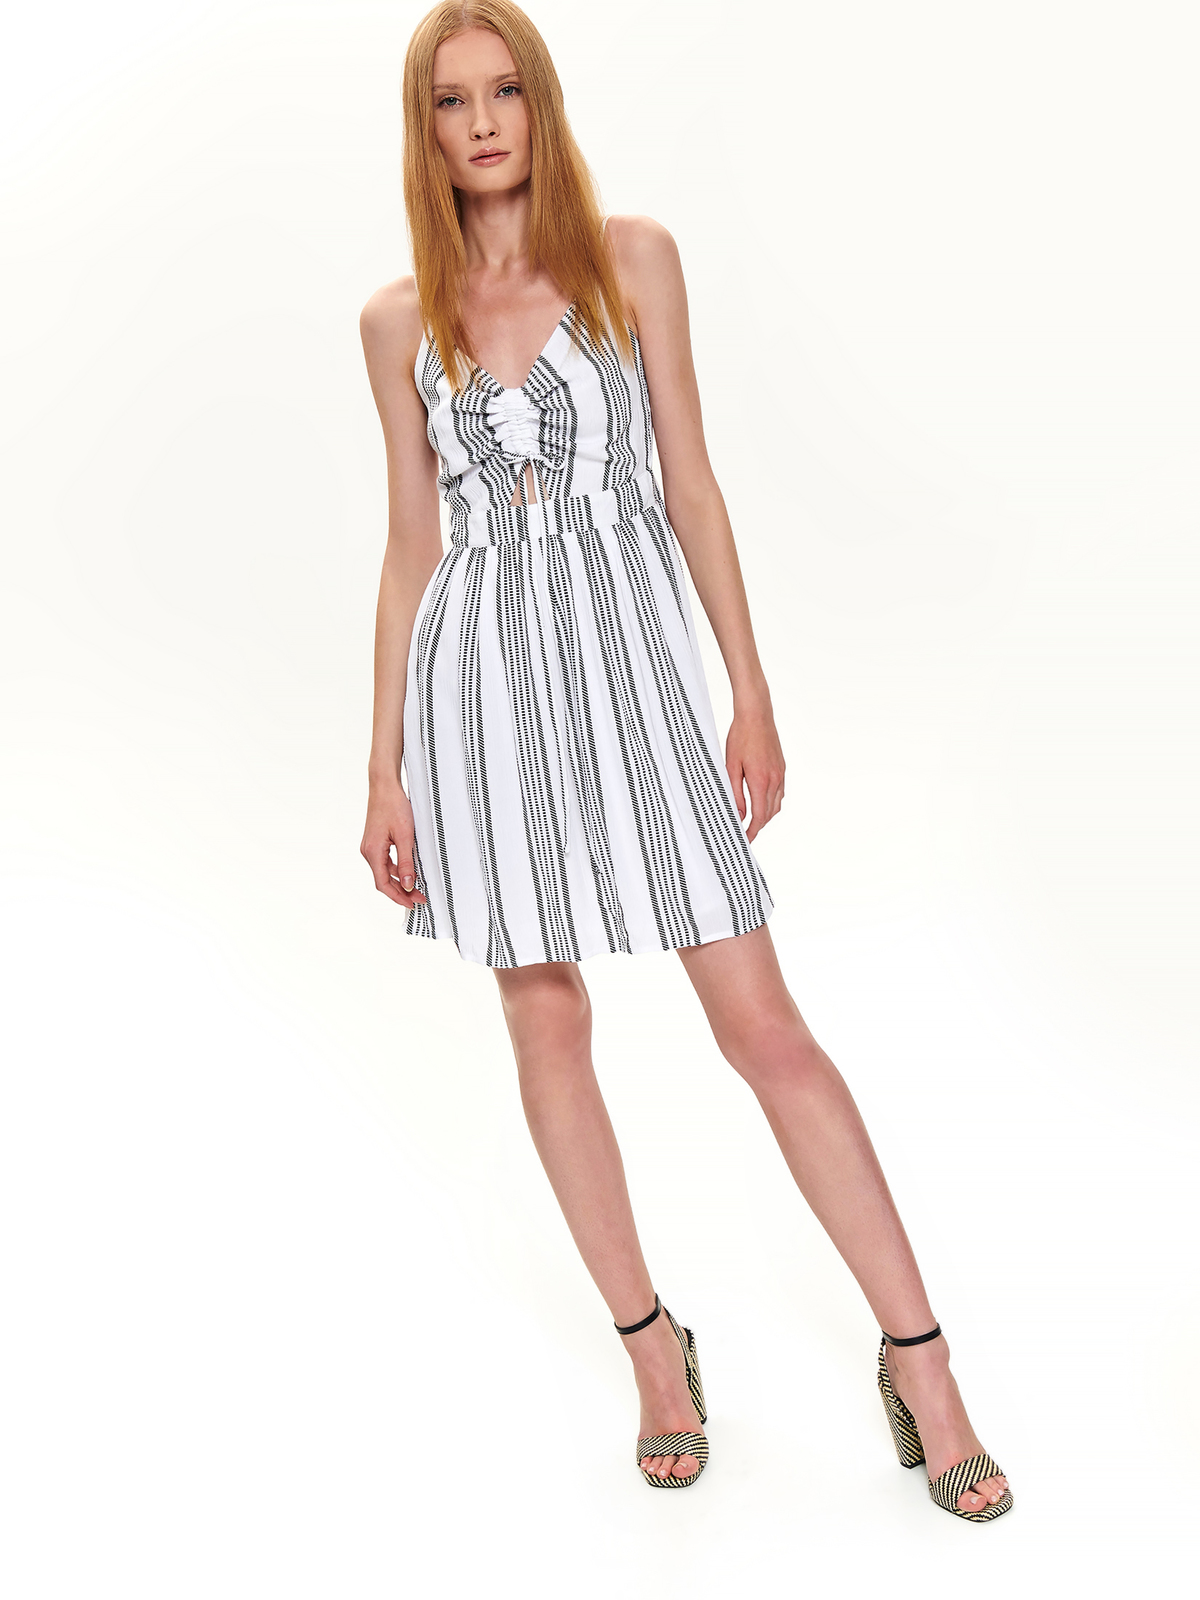 White dress daily short cut with stripes with v-neckline